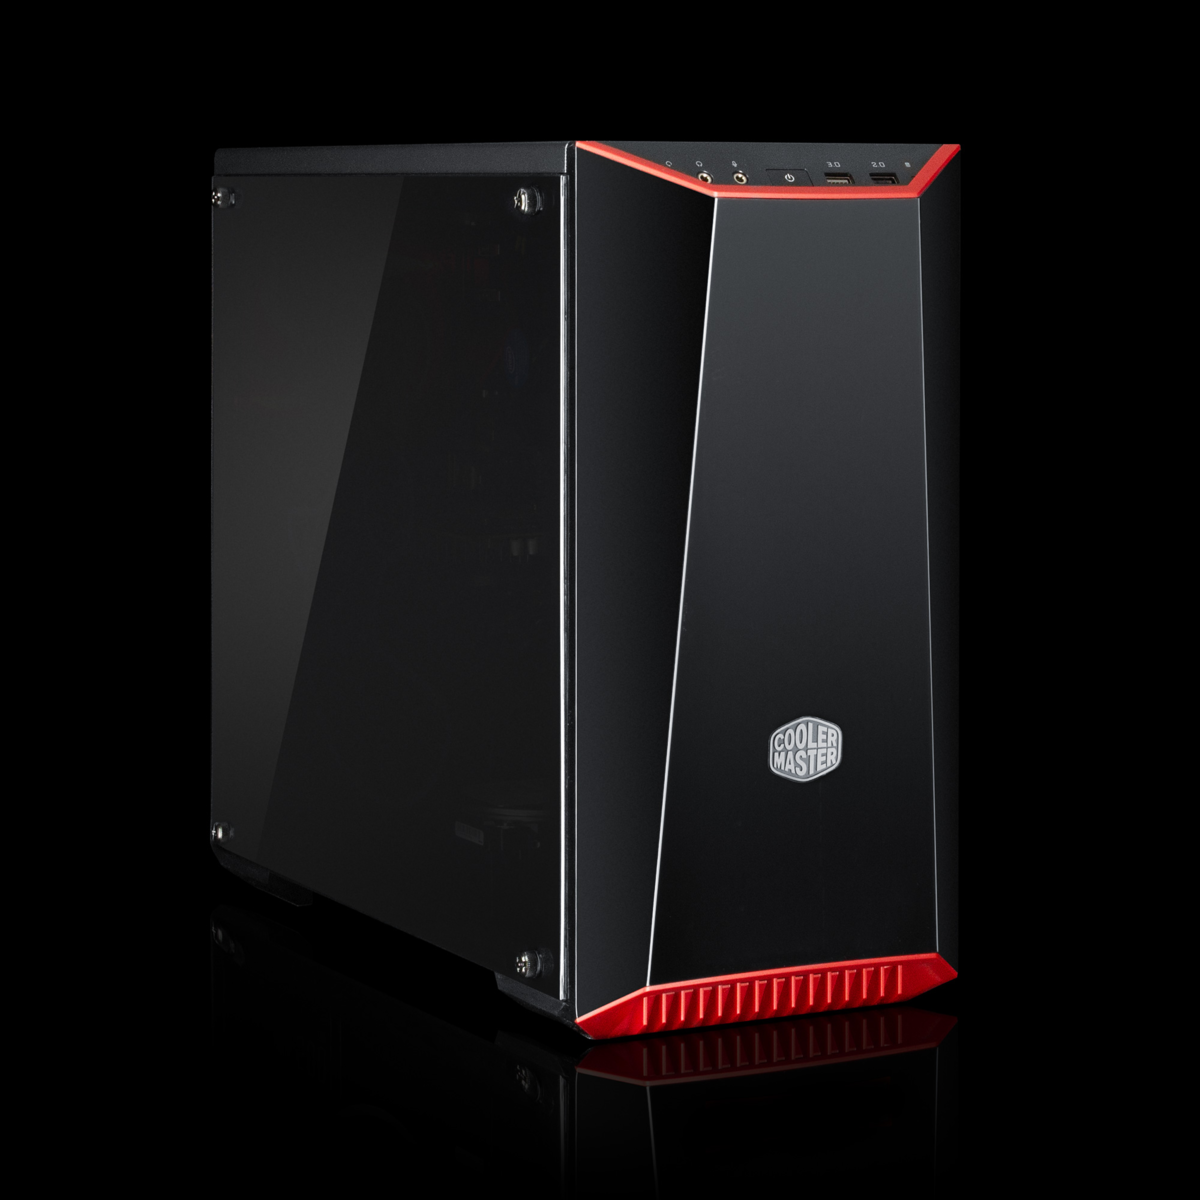 Chillblast Fusion Fiend GTX 1650 Super Gaming PC